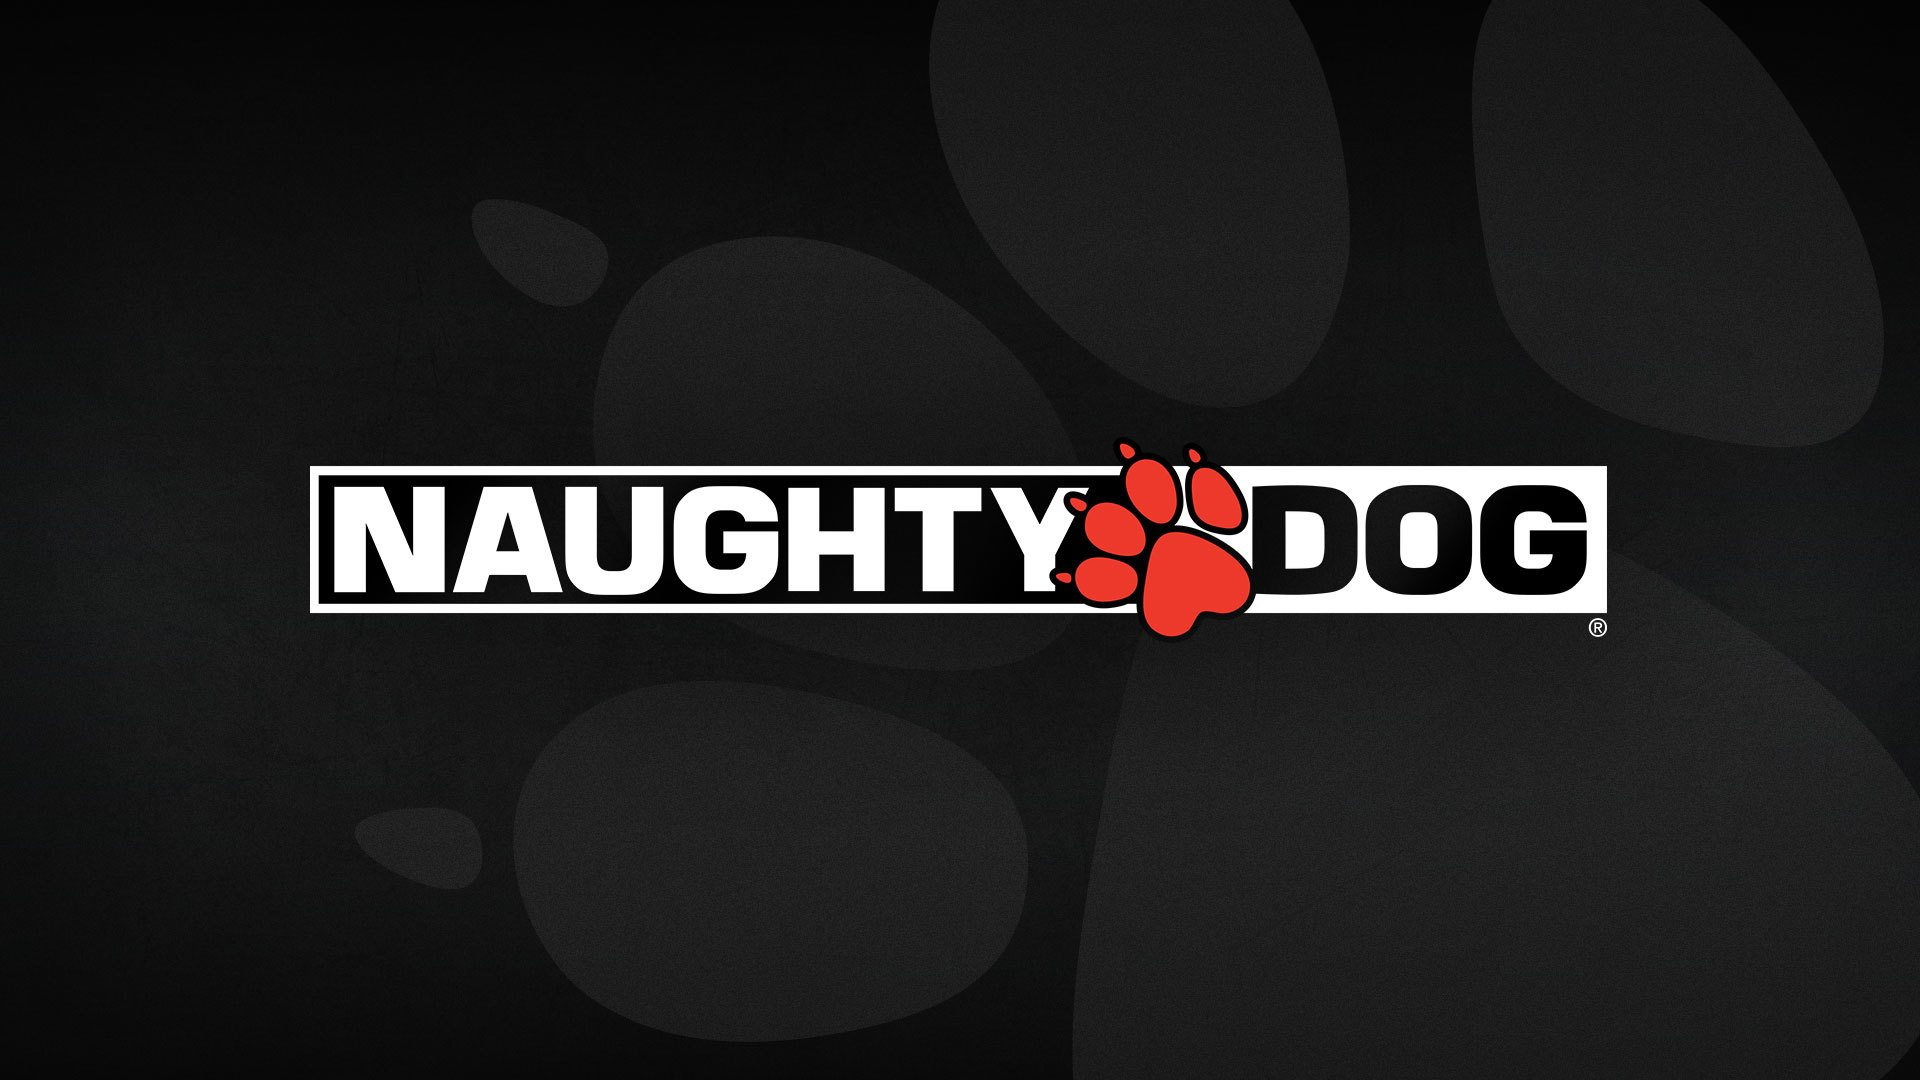 Accuse di molestie sessuali, scoppia lo scandalo in Naughty Dog